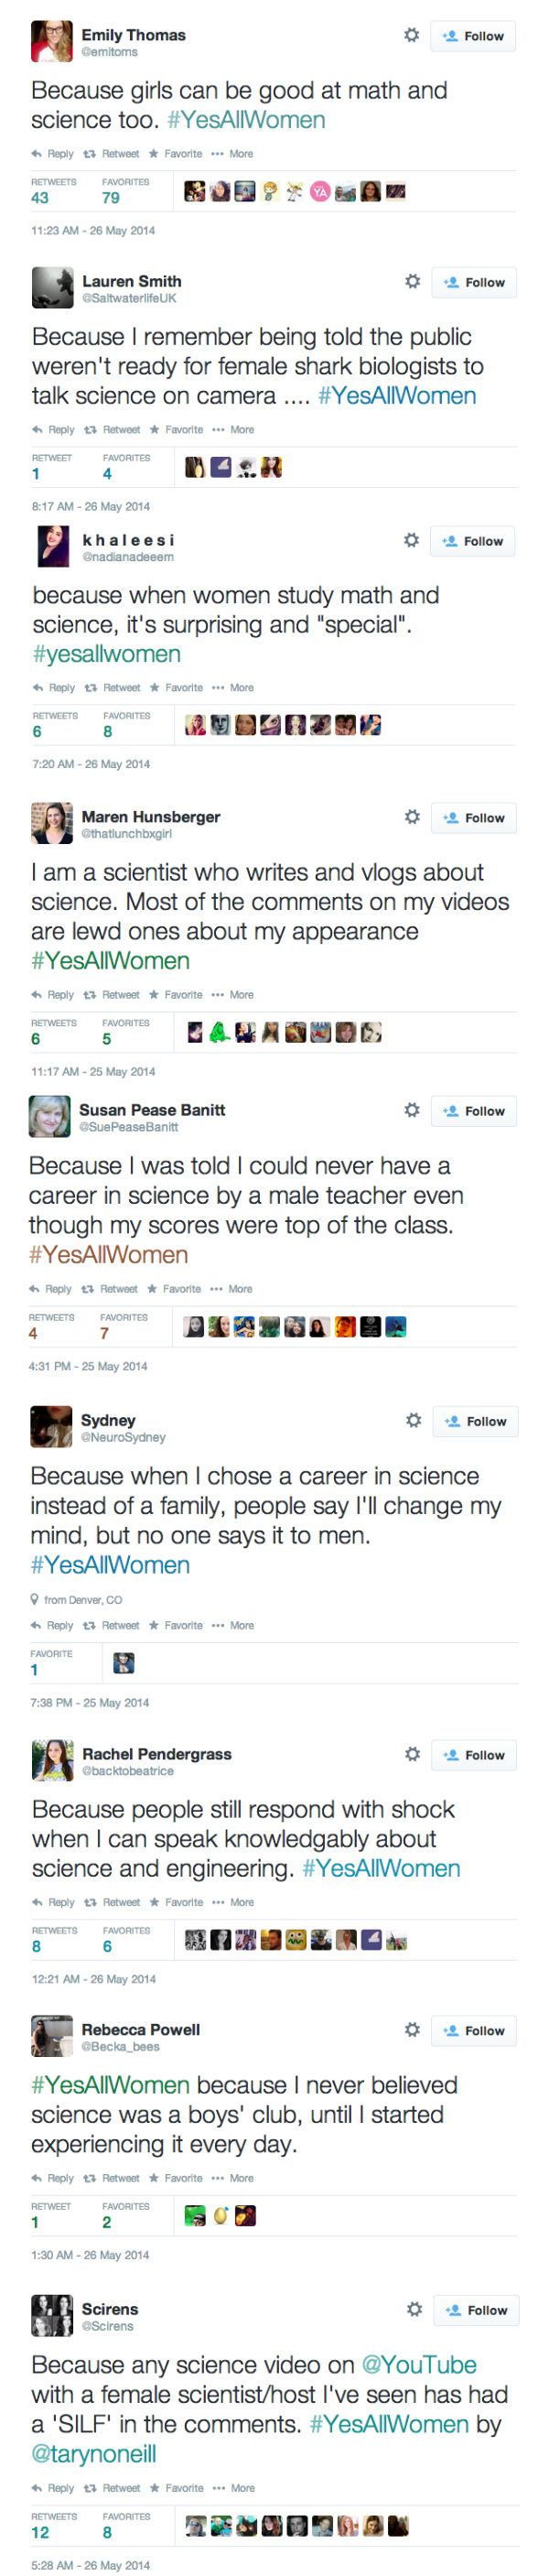 #YesAllWomen tweets reveal persistent sexism in science